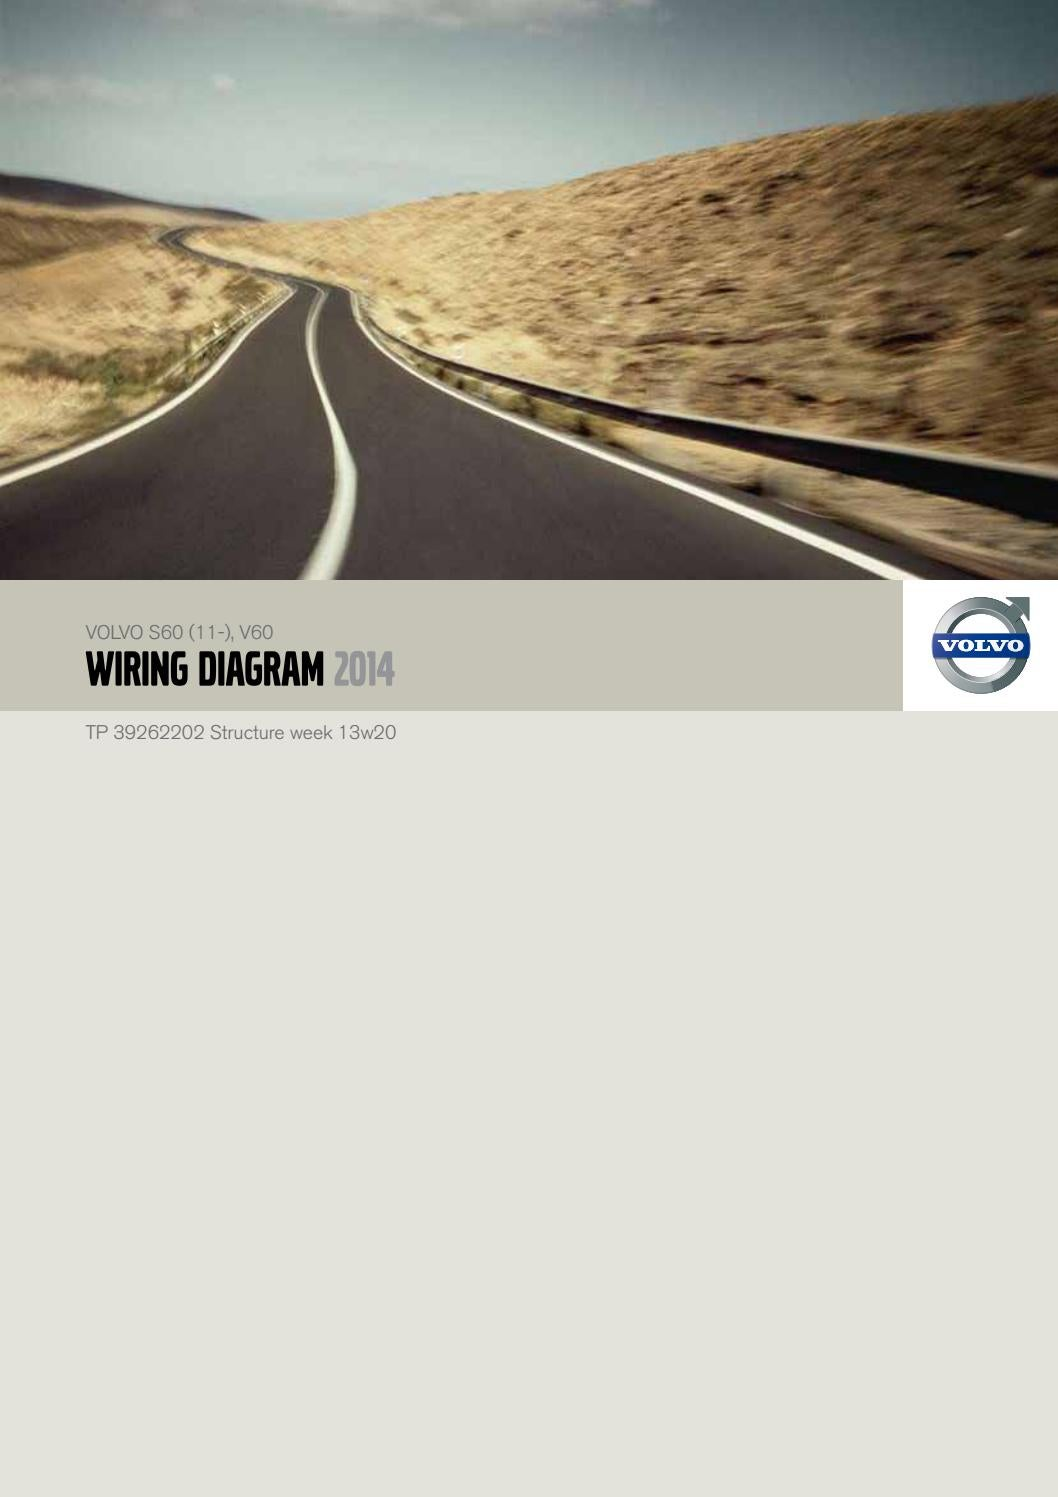 Volvo S60 V60 2014 Electrical Wiring Diagram Manual Instant – Download by  heydownloads - issuu | Volvo S60 Headlight Wiring Diagram |  | Issuu